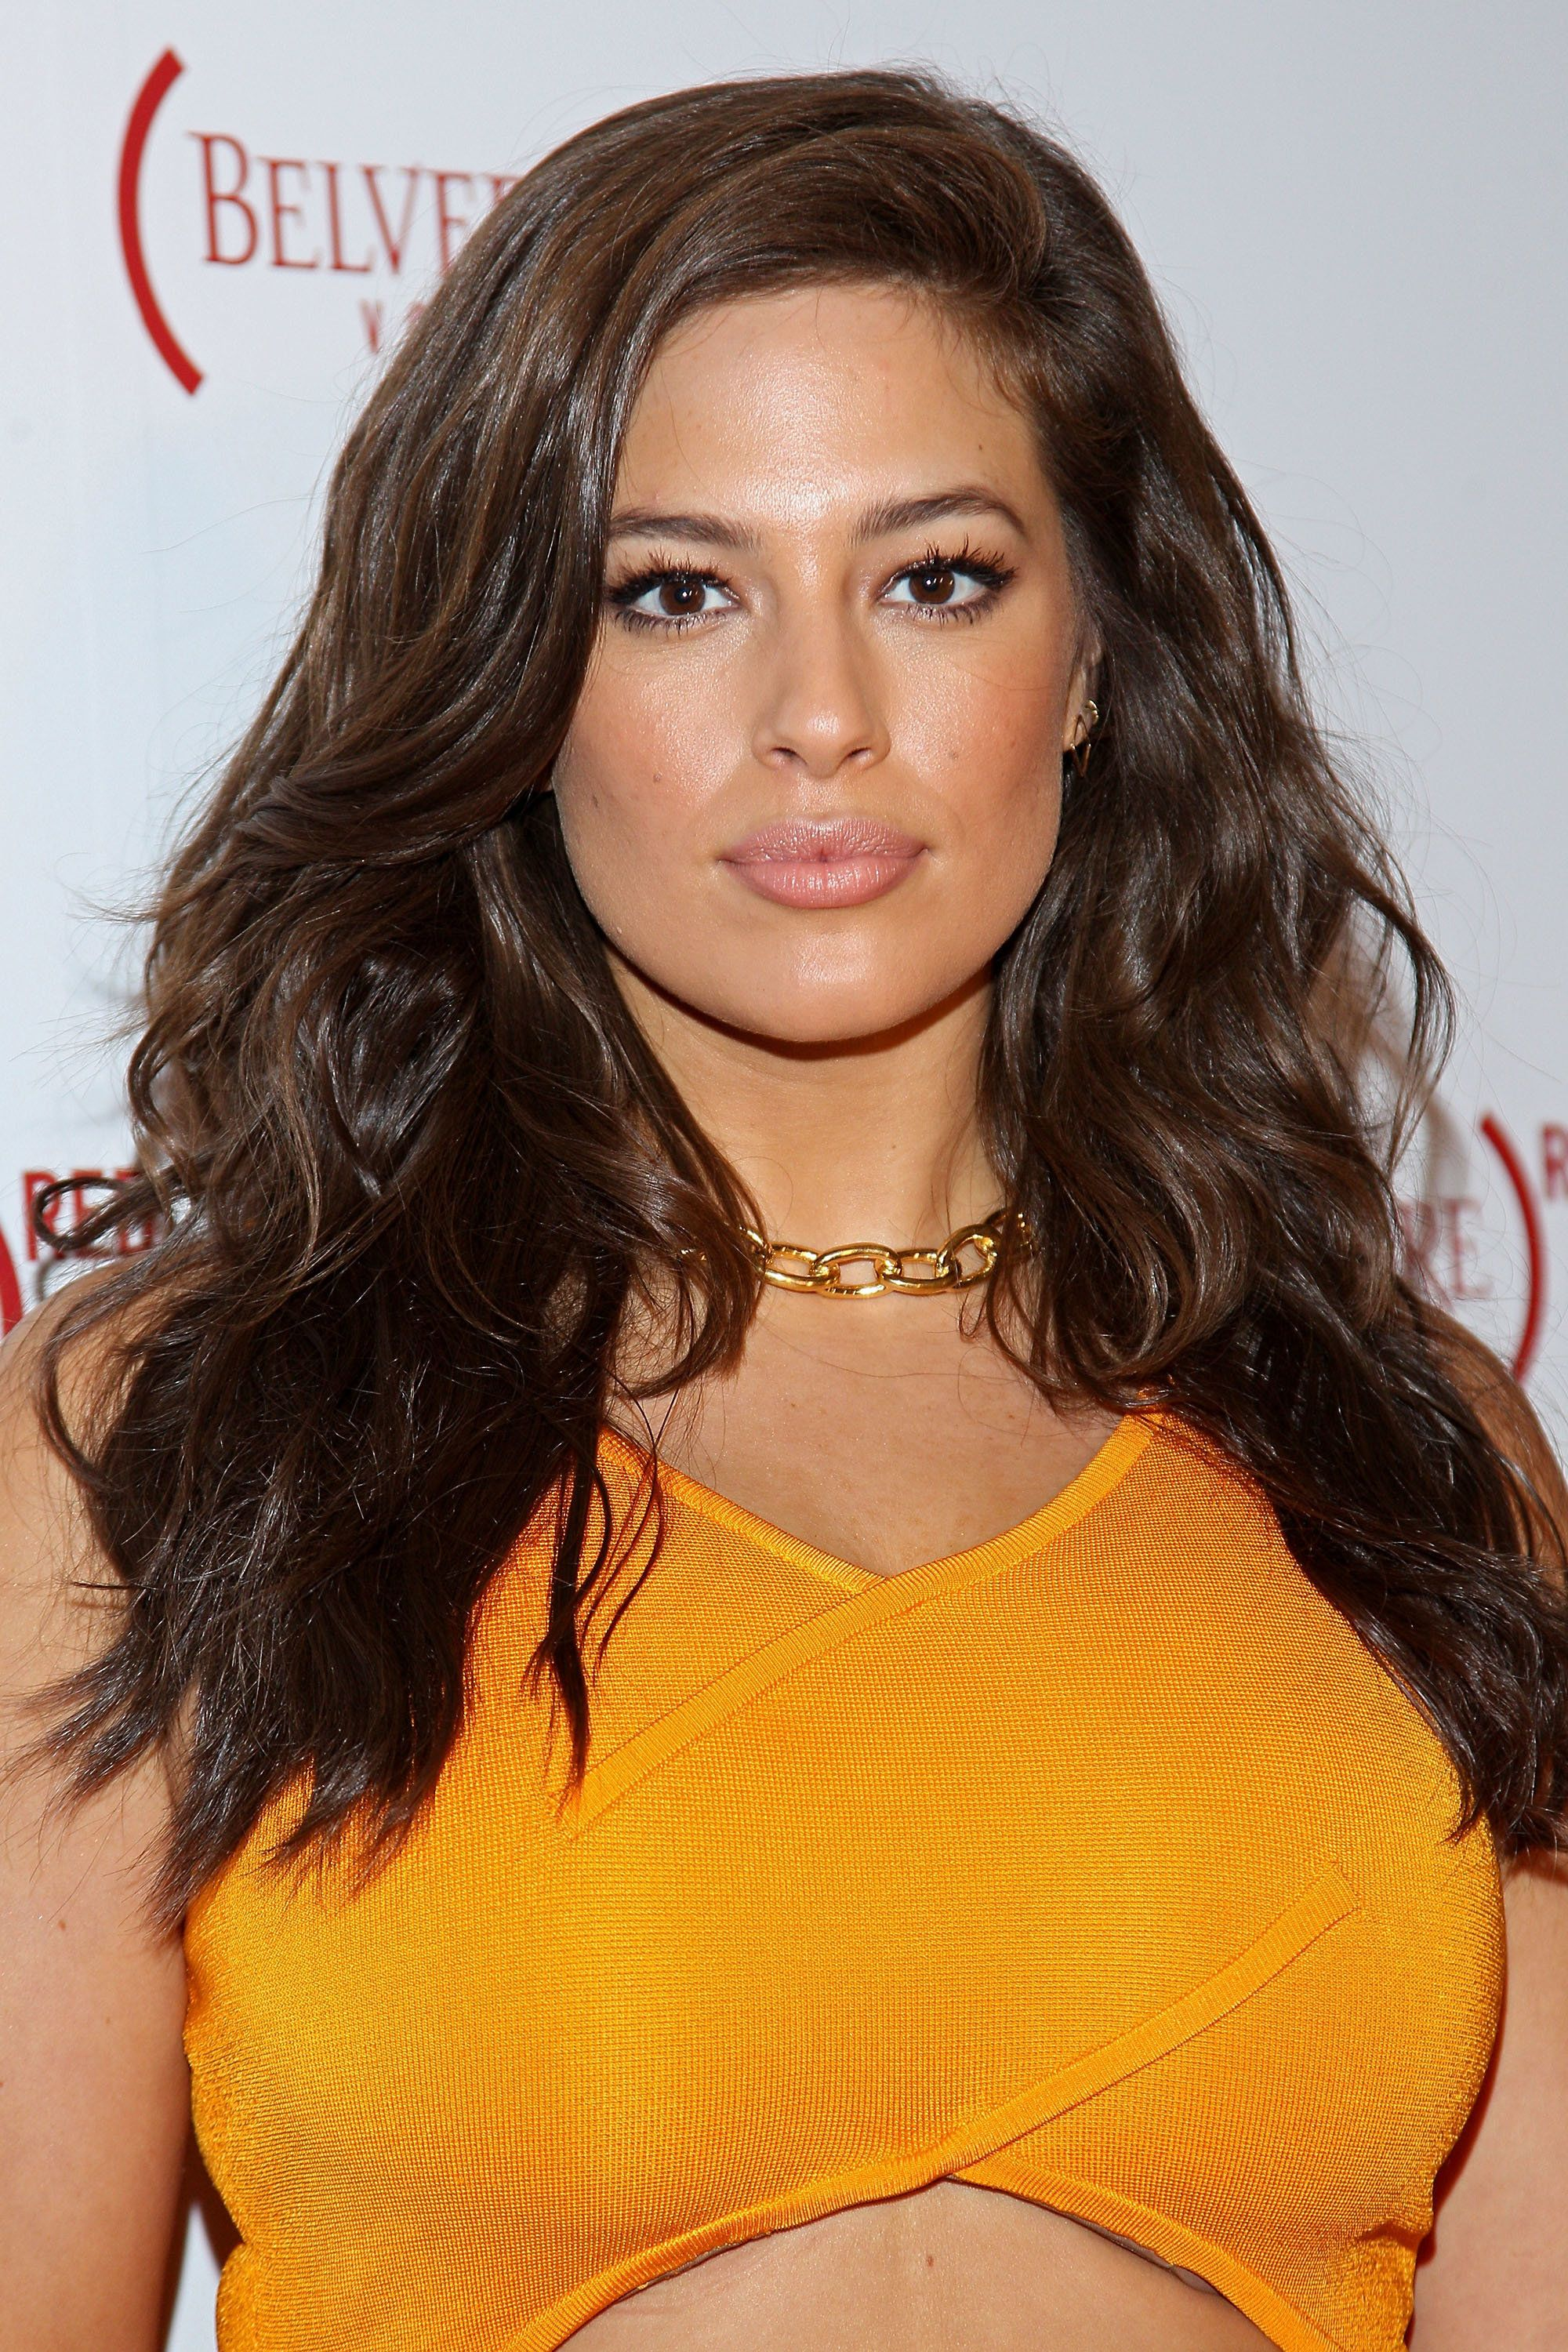 Plus-size supermodel Ashley Graham is a closer representation to the average American woman.